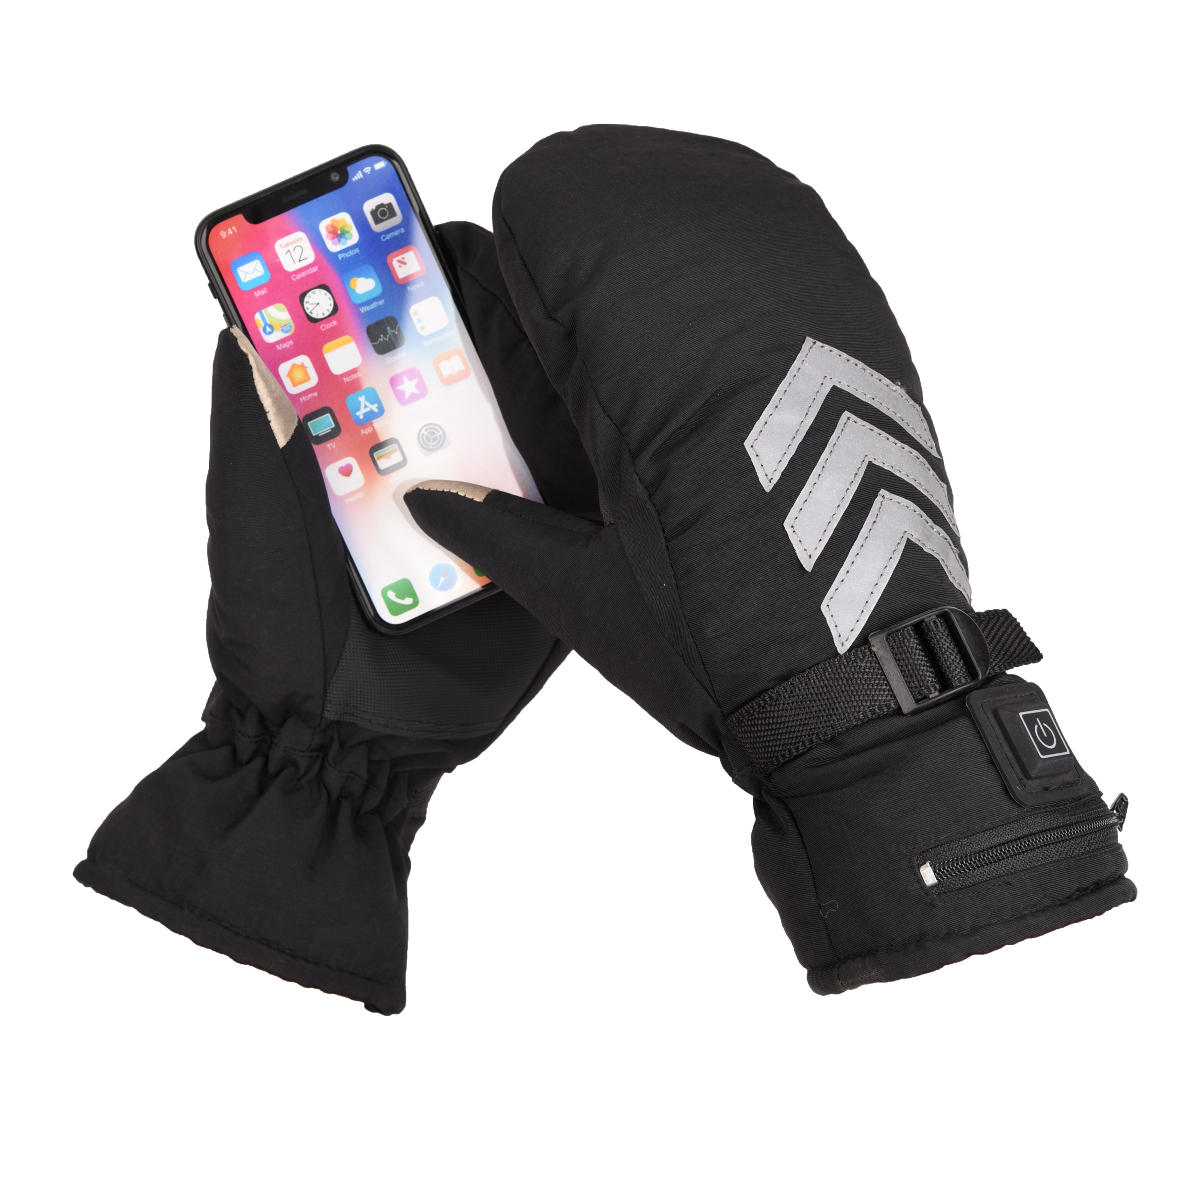 7.4V Electric Heated Warm Gloves Touch Screen Three-speed Adjustable Temperature Motorcycle Racing Waterproof Reflective